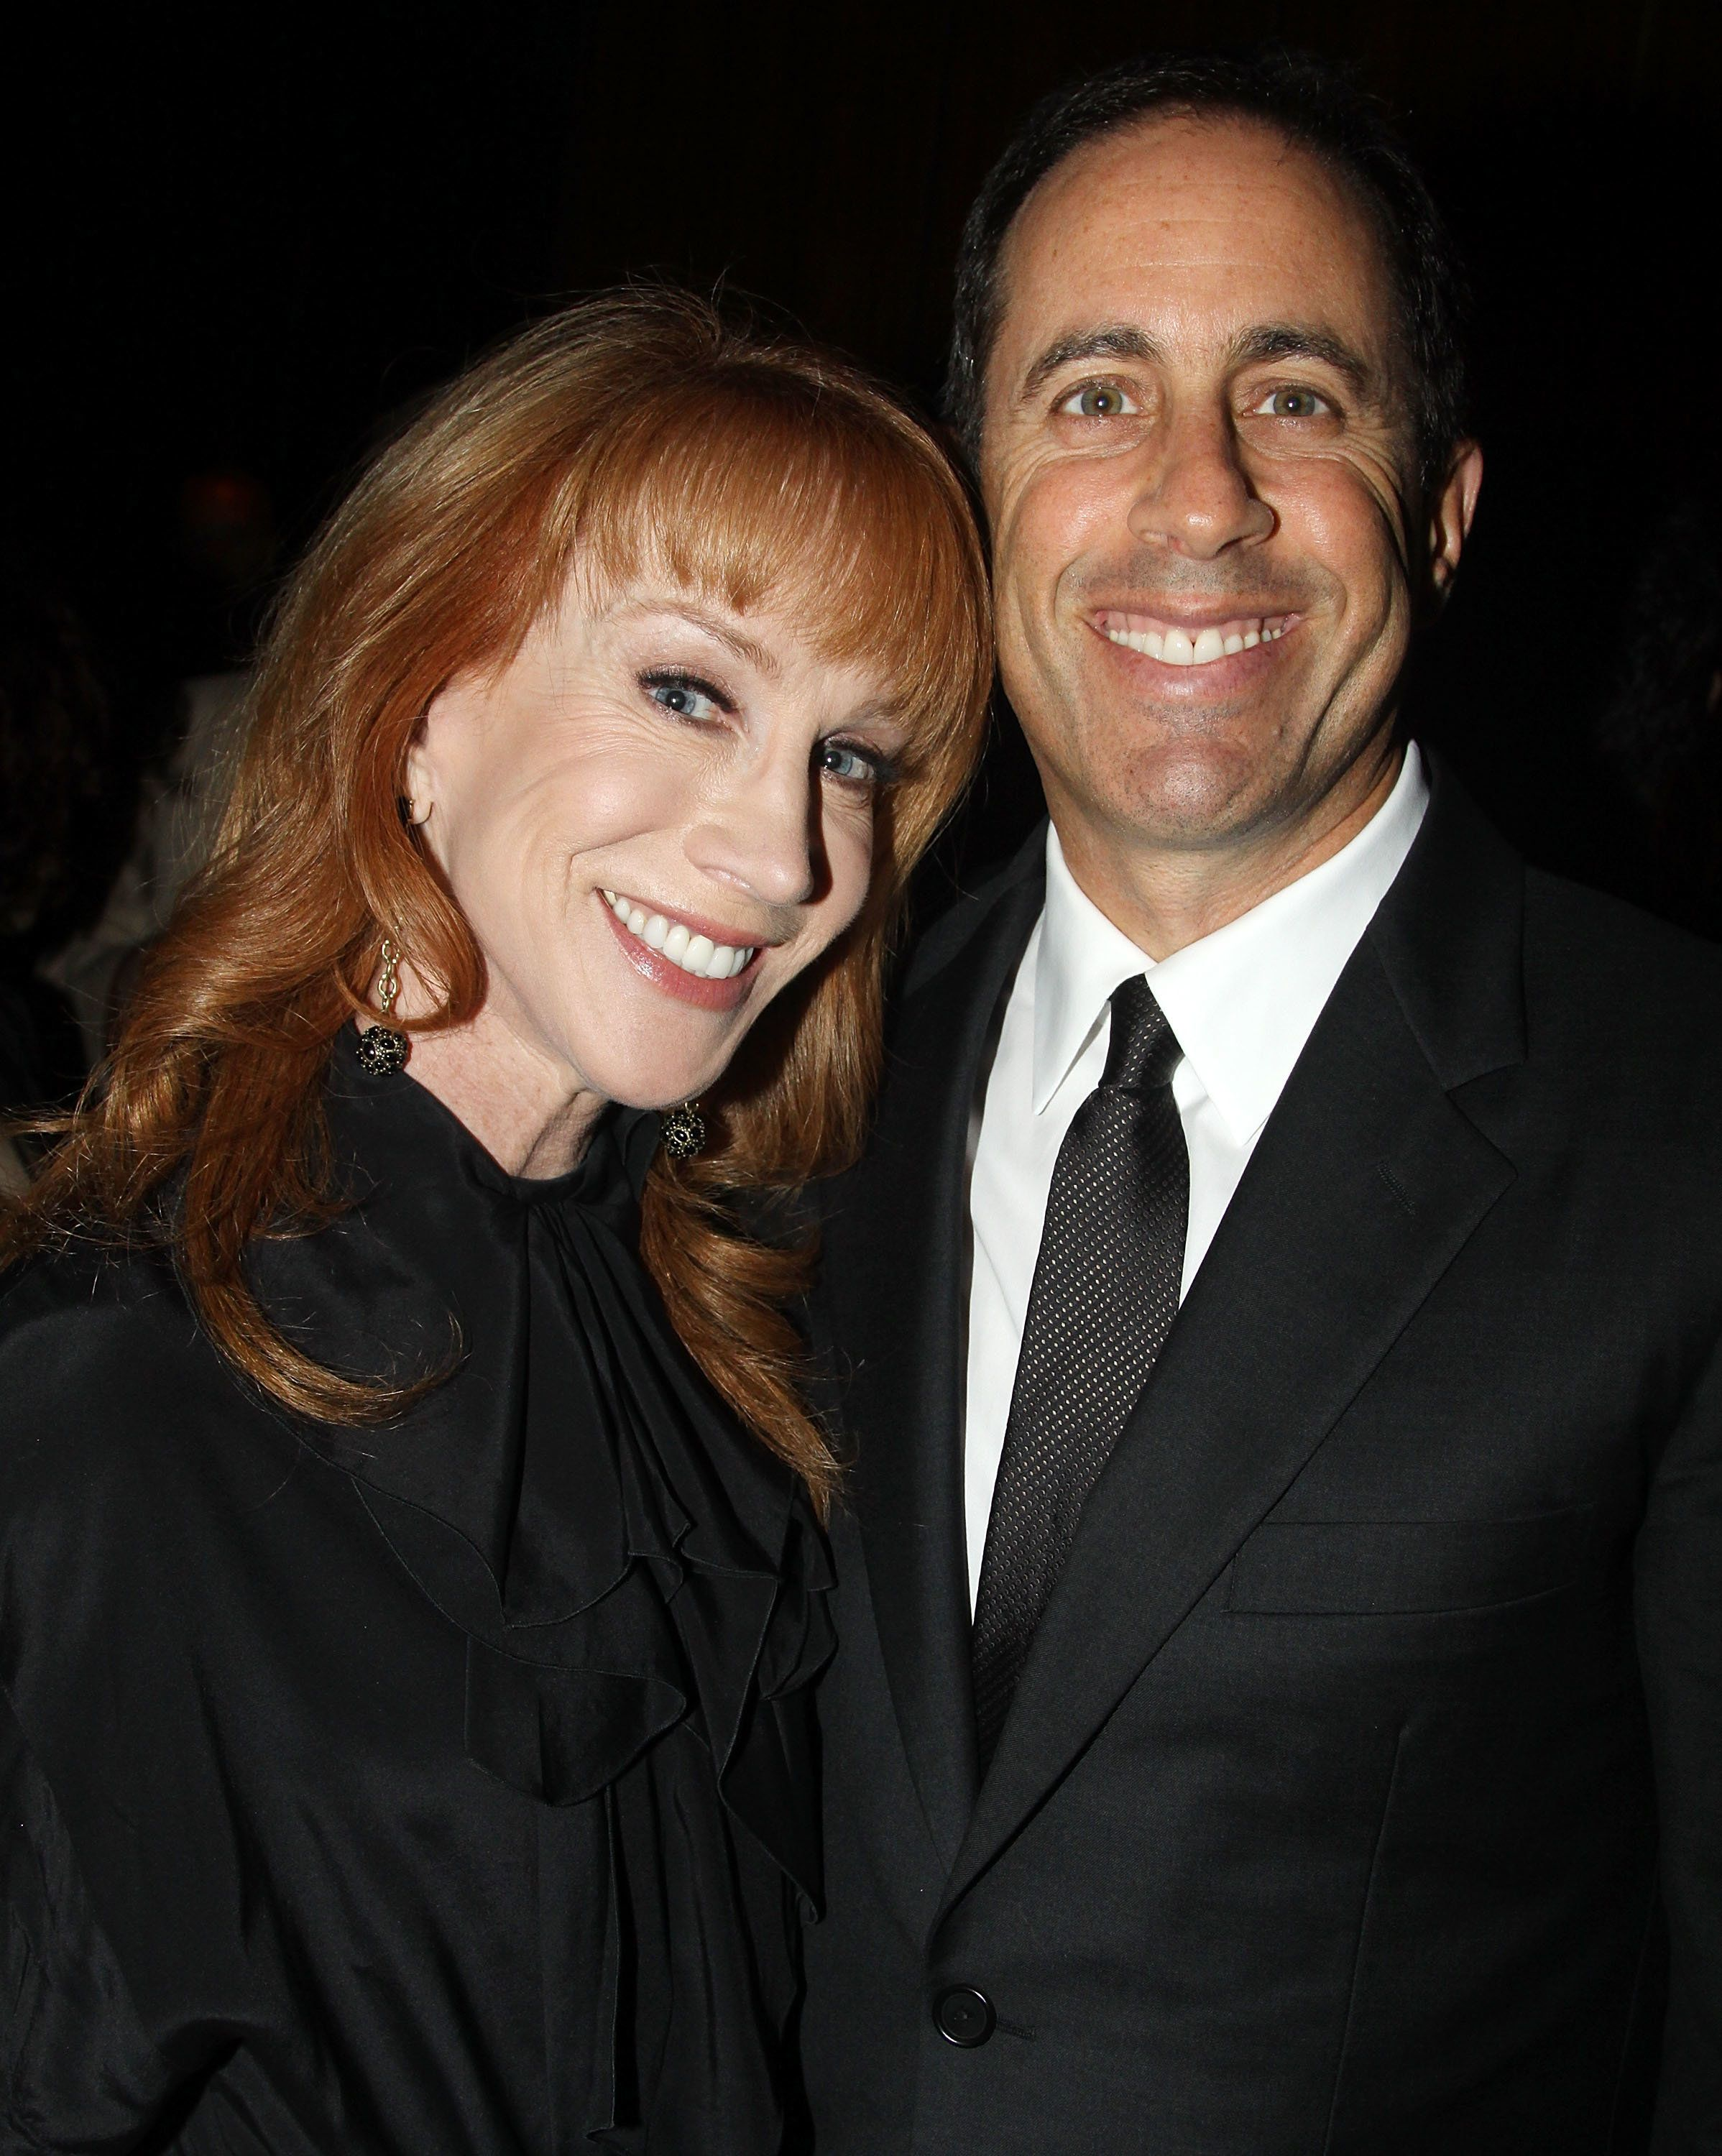 NEW YORK - NOVEMBER 09:  Kathy Griffin and Jerry Seinfeld pose at the Opening Night After Party for 'Colin Quinn Long Story Short' on Broadway at Forty Four at the Royalton on November 9, 2010 in New York City.  (Photo by Bruce Glikas/FilmMagic)